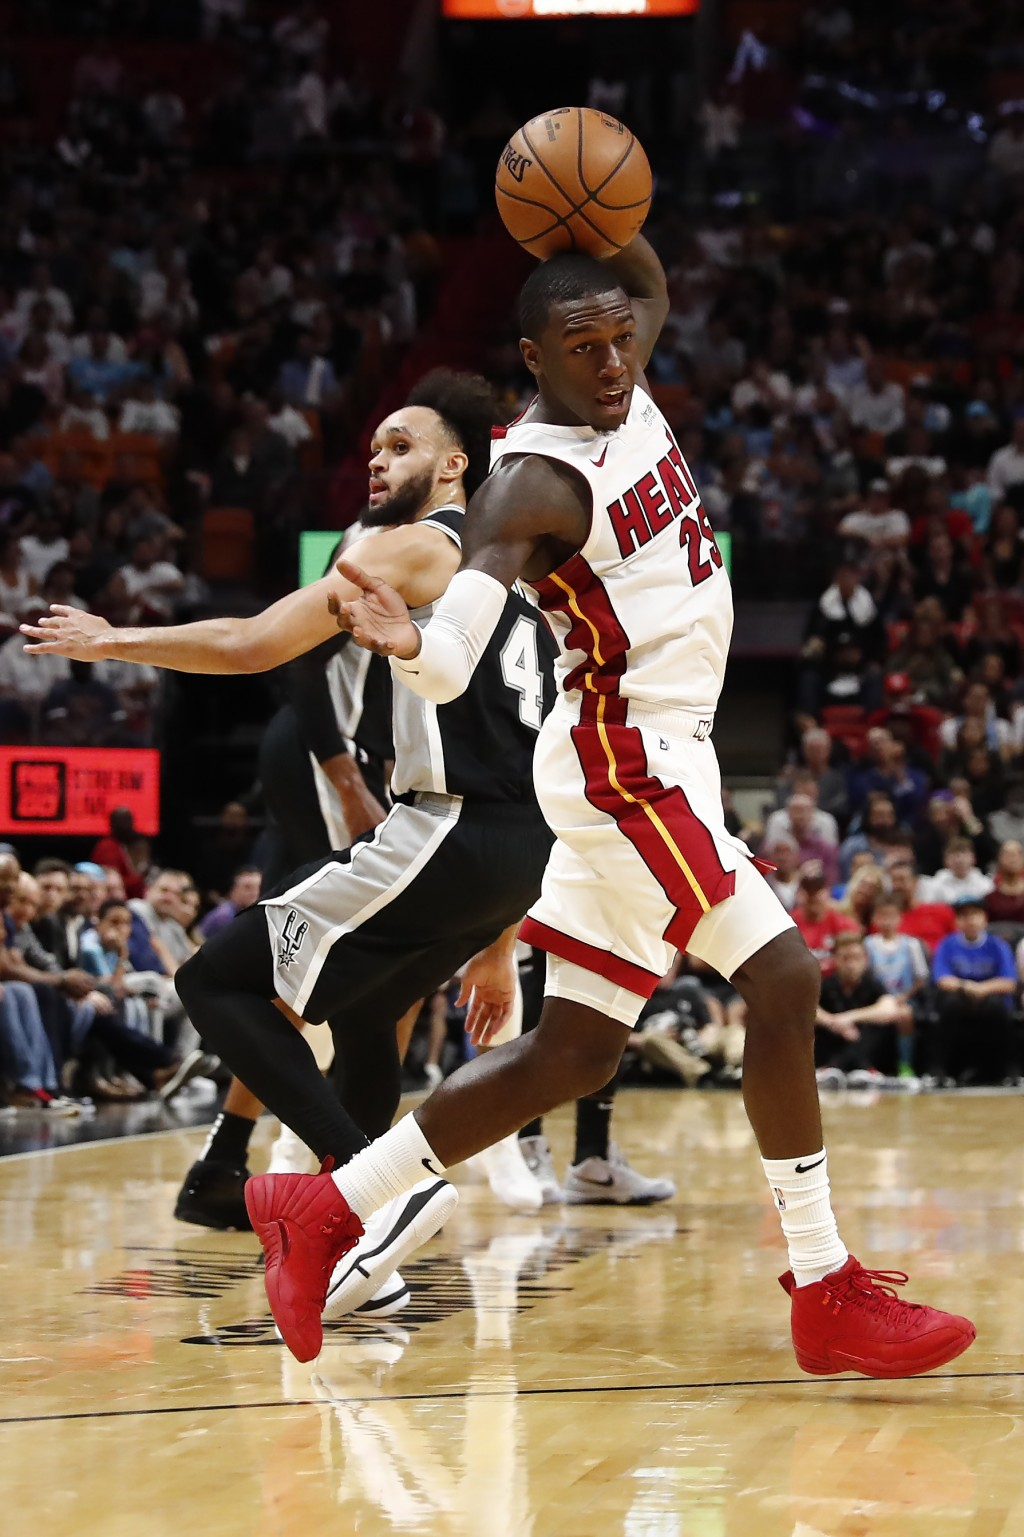 Miami Heat guard Kendrick Nunn (25) steals the ball from San Antonio Spurs guard Derrick White (4) in the second half of an NBA basketball game, Wedne...